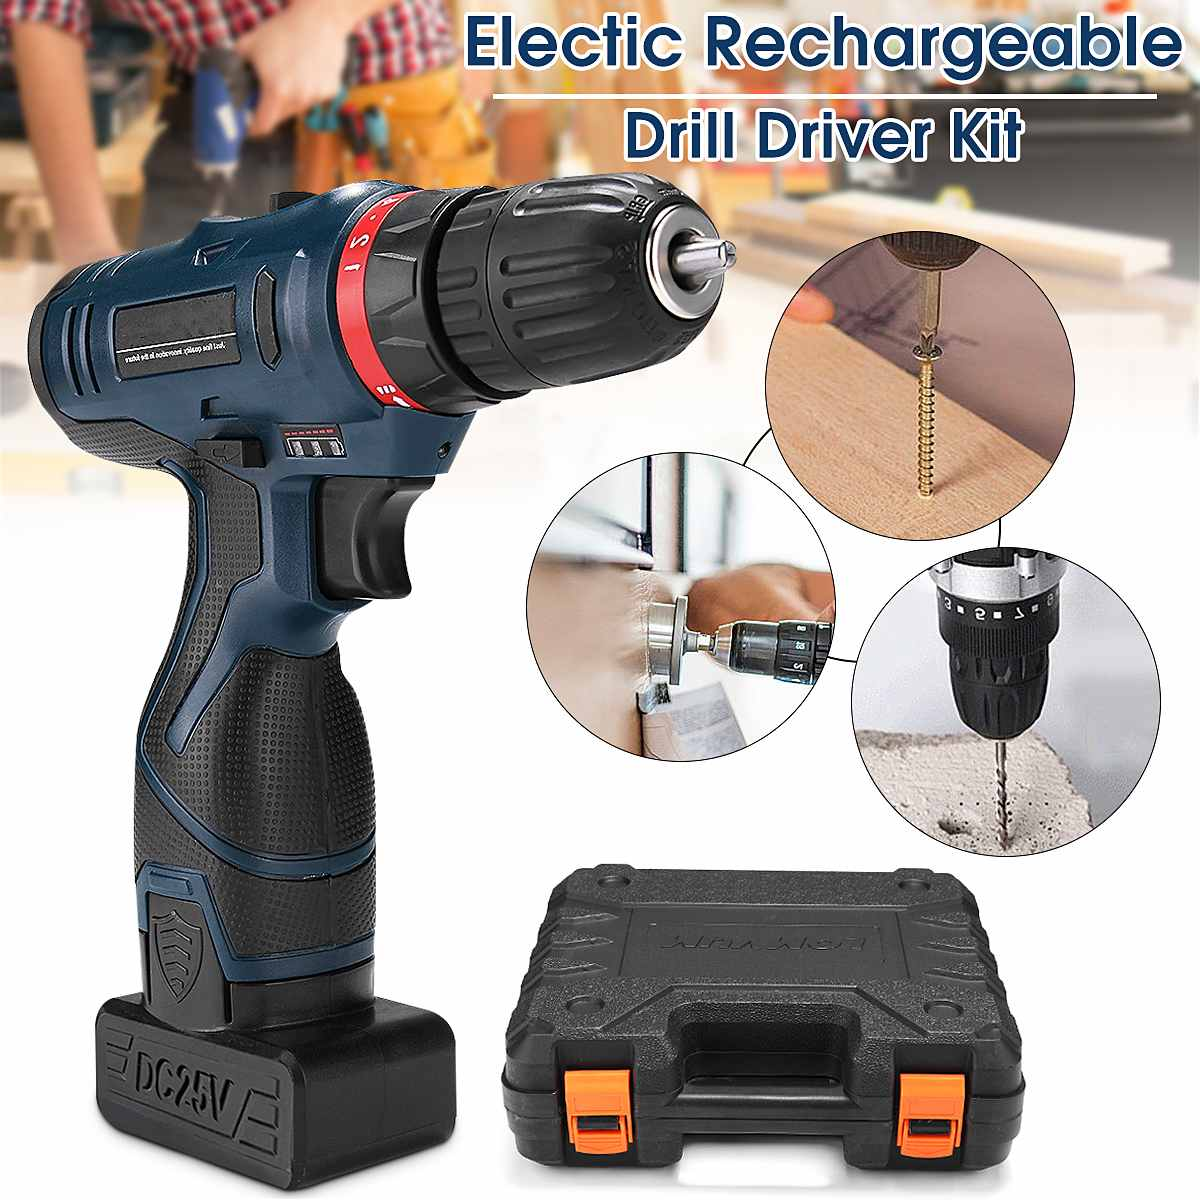 New Style 25V Impact Drill Electric Hand Drill Battery Cordless Hammer Drill Electric Screwdriver Home Diy Power ToolsNew Style 25V Impact Drill Electric Hand Drill Battery Cordless Hammer Drill Electric Screwdriver Home Diy Power Tools